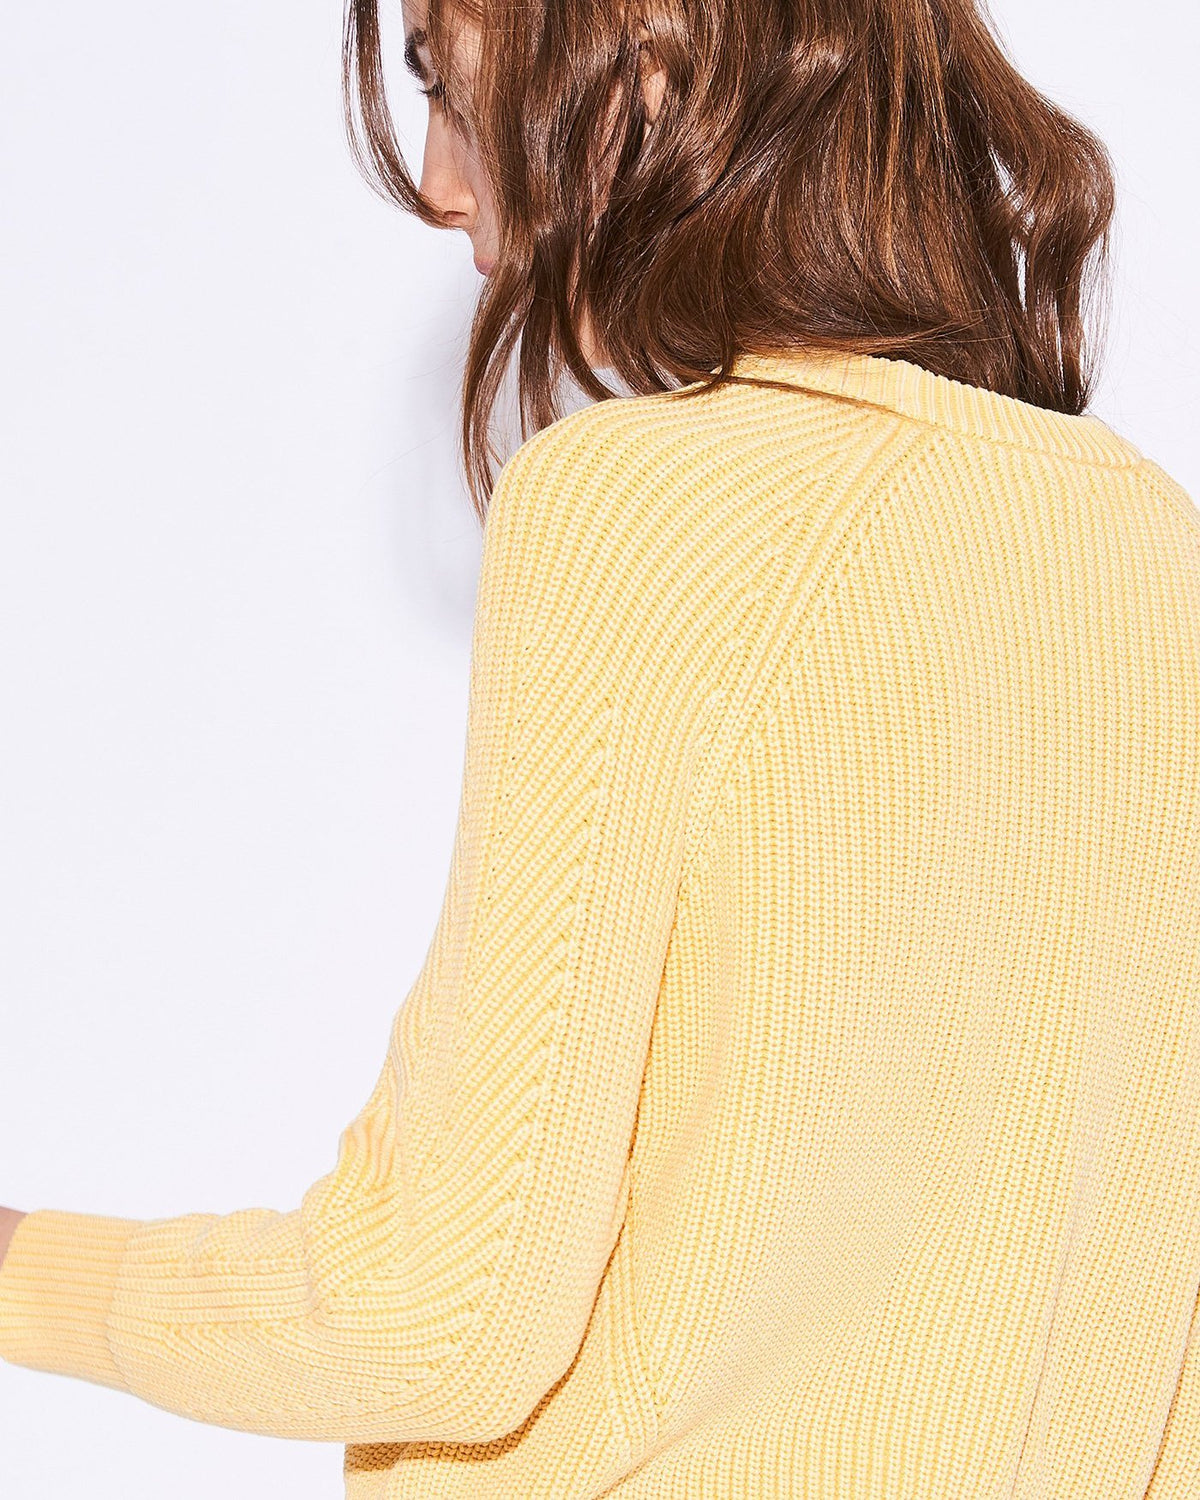 Demylee Clothing Chelsea Raglan Sweater in Daffodil